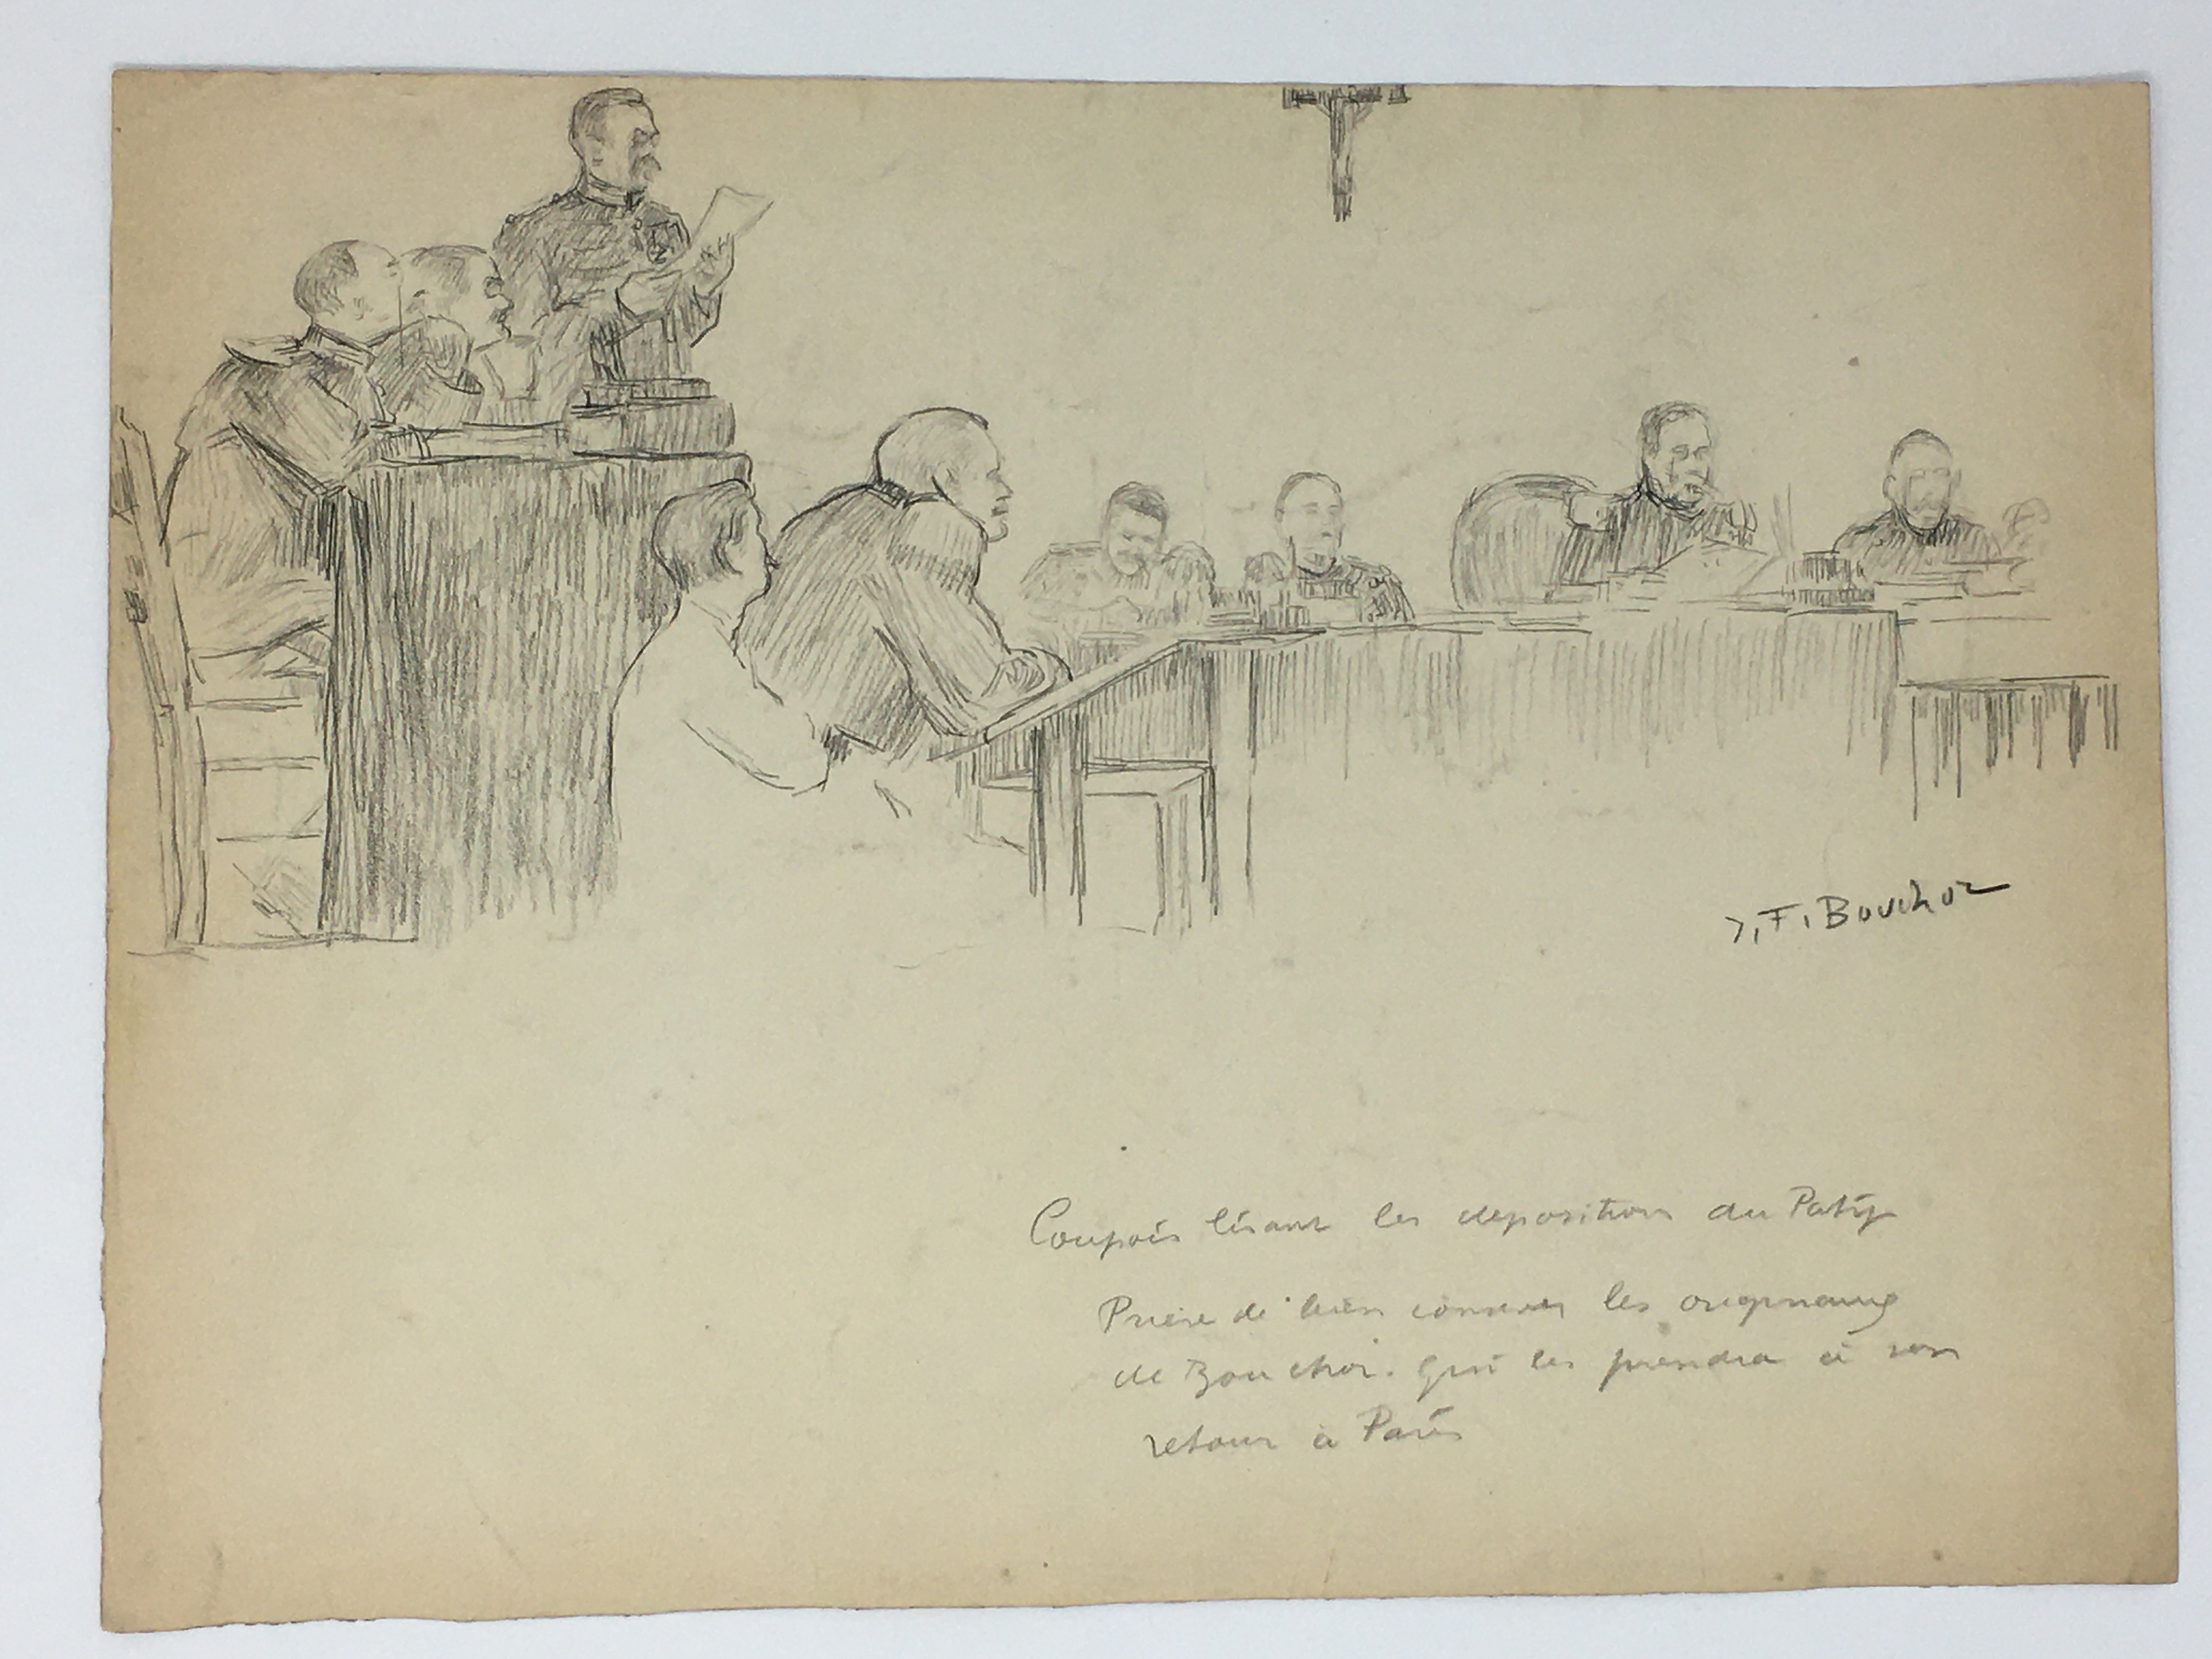 J'Accuse Newspaper, Emile Zola Quote, Signed Dreyfus Portrait, Rare Trial Drawings & Schwartzkoppen - Image 30 of 74